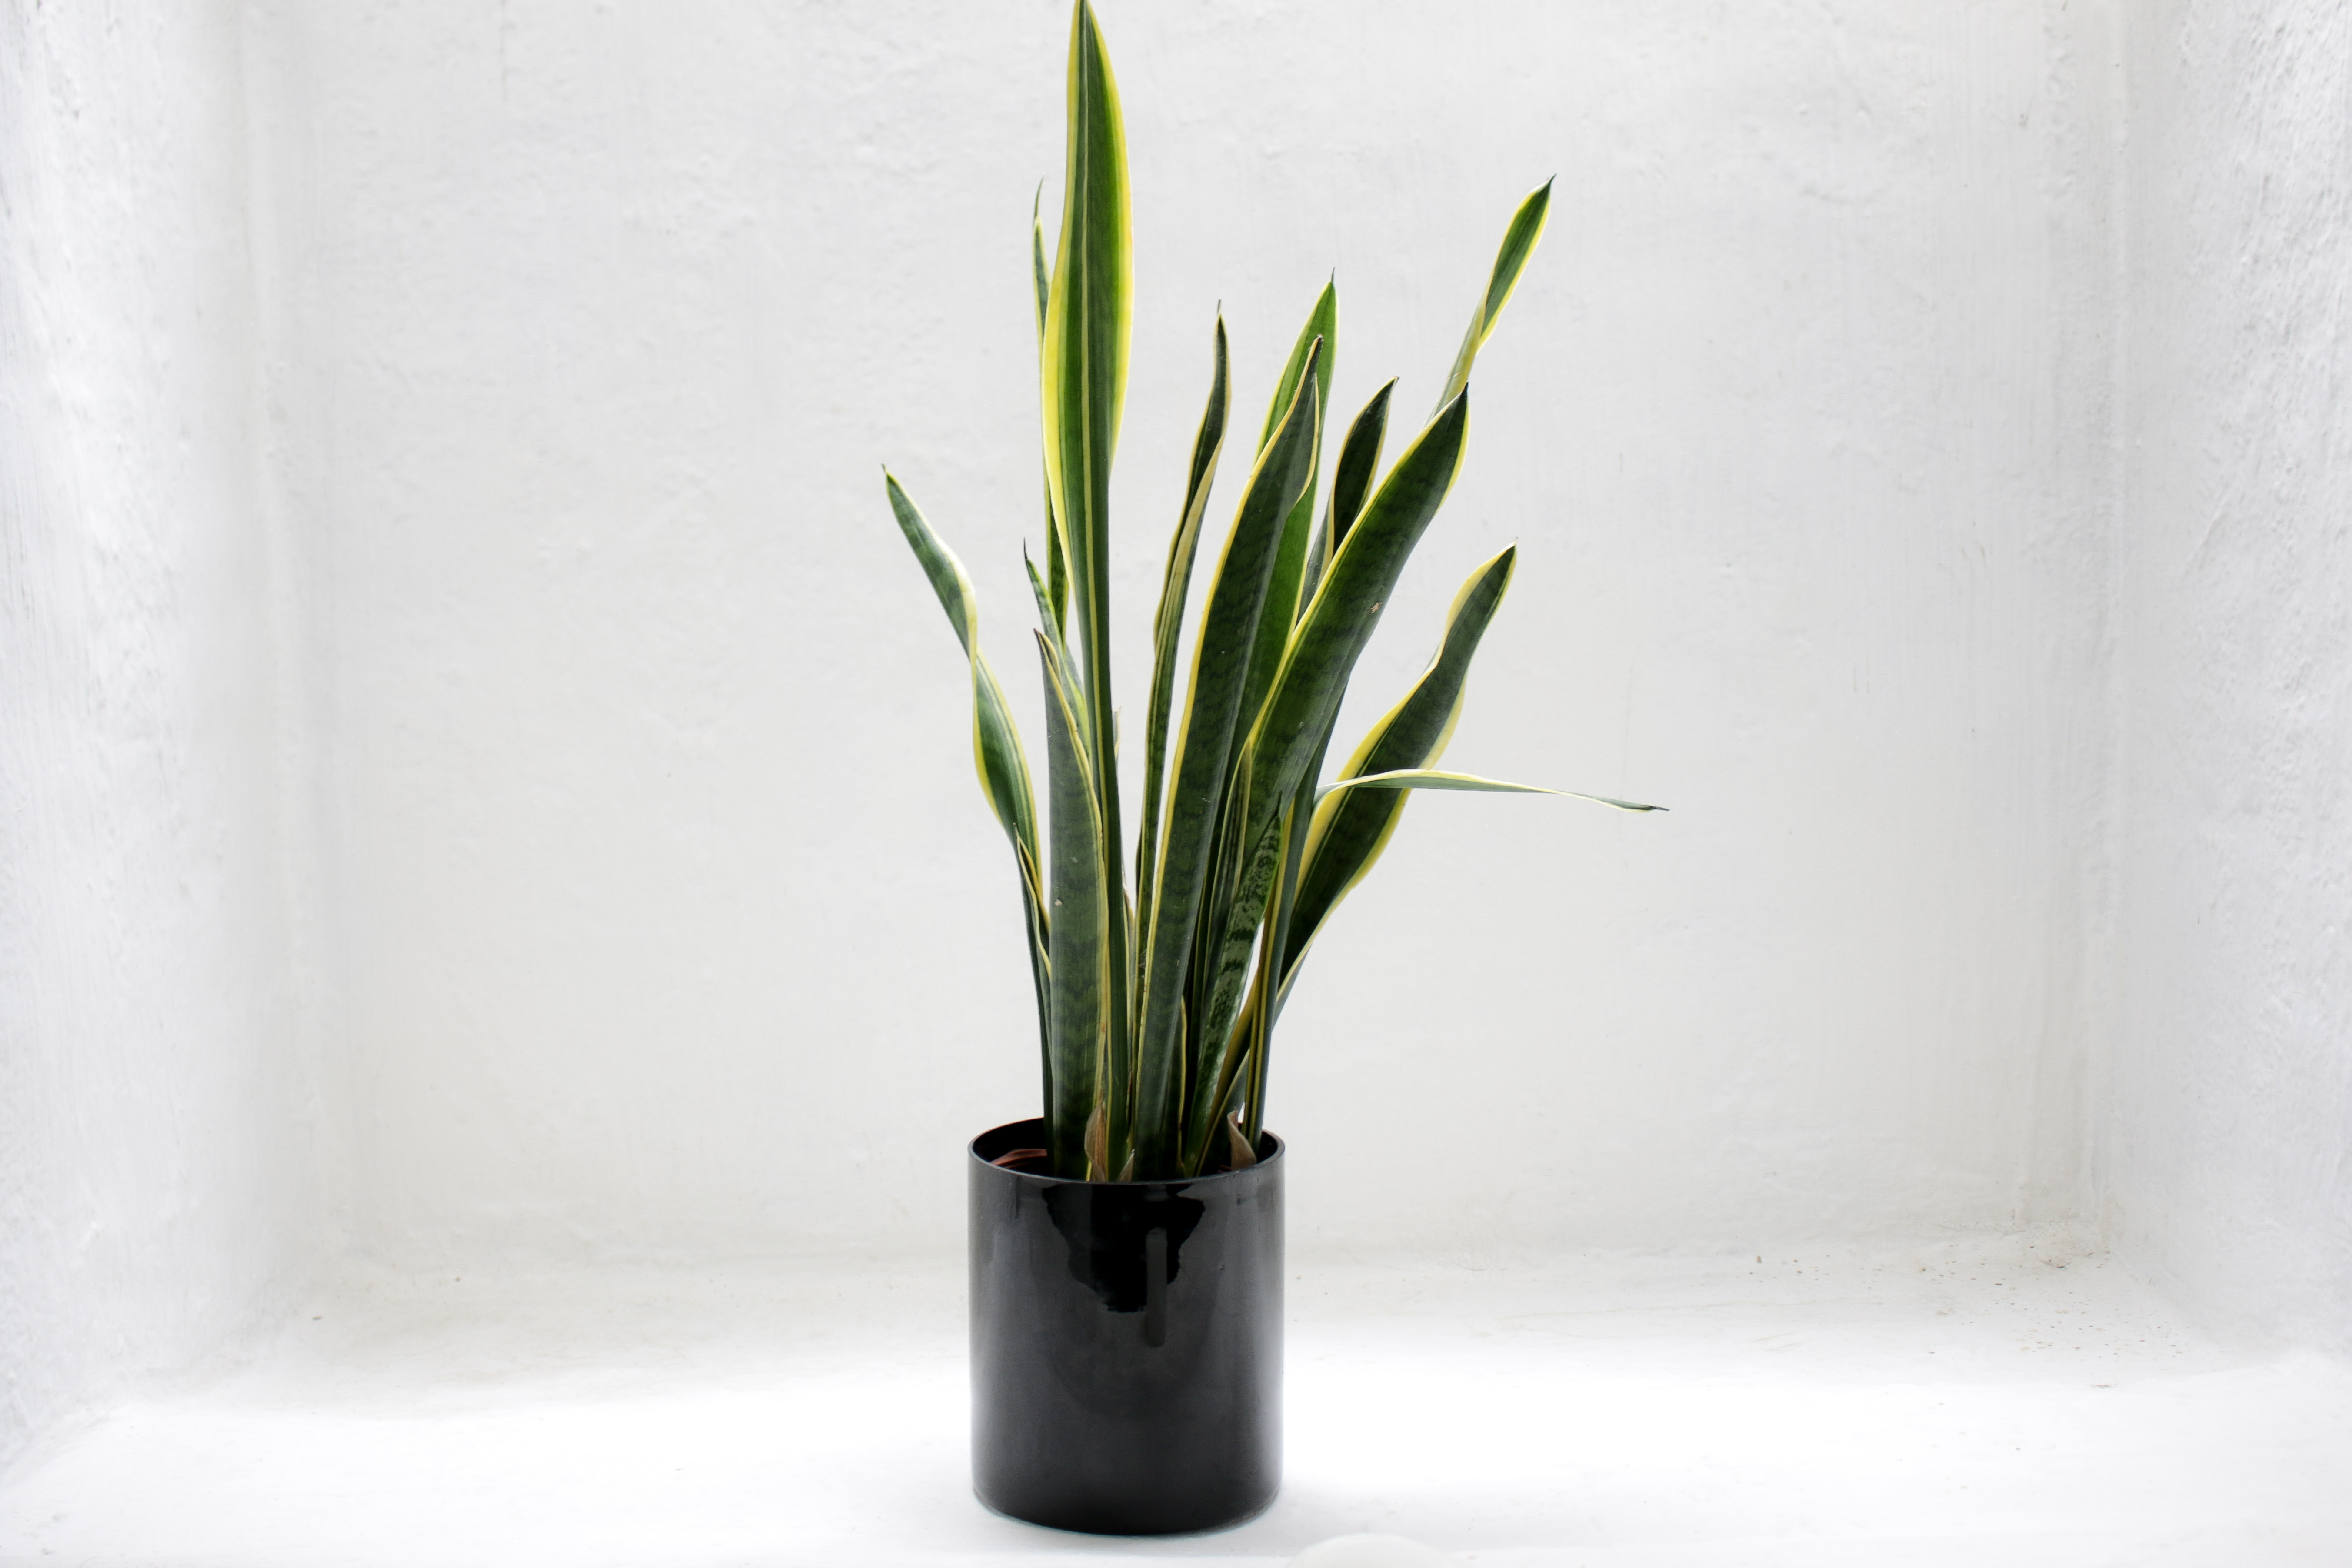 The Perfect Plant for Brown Thumbs